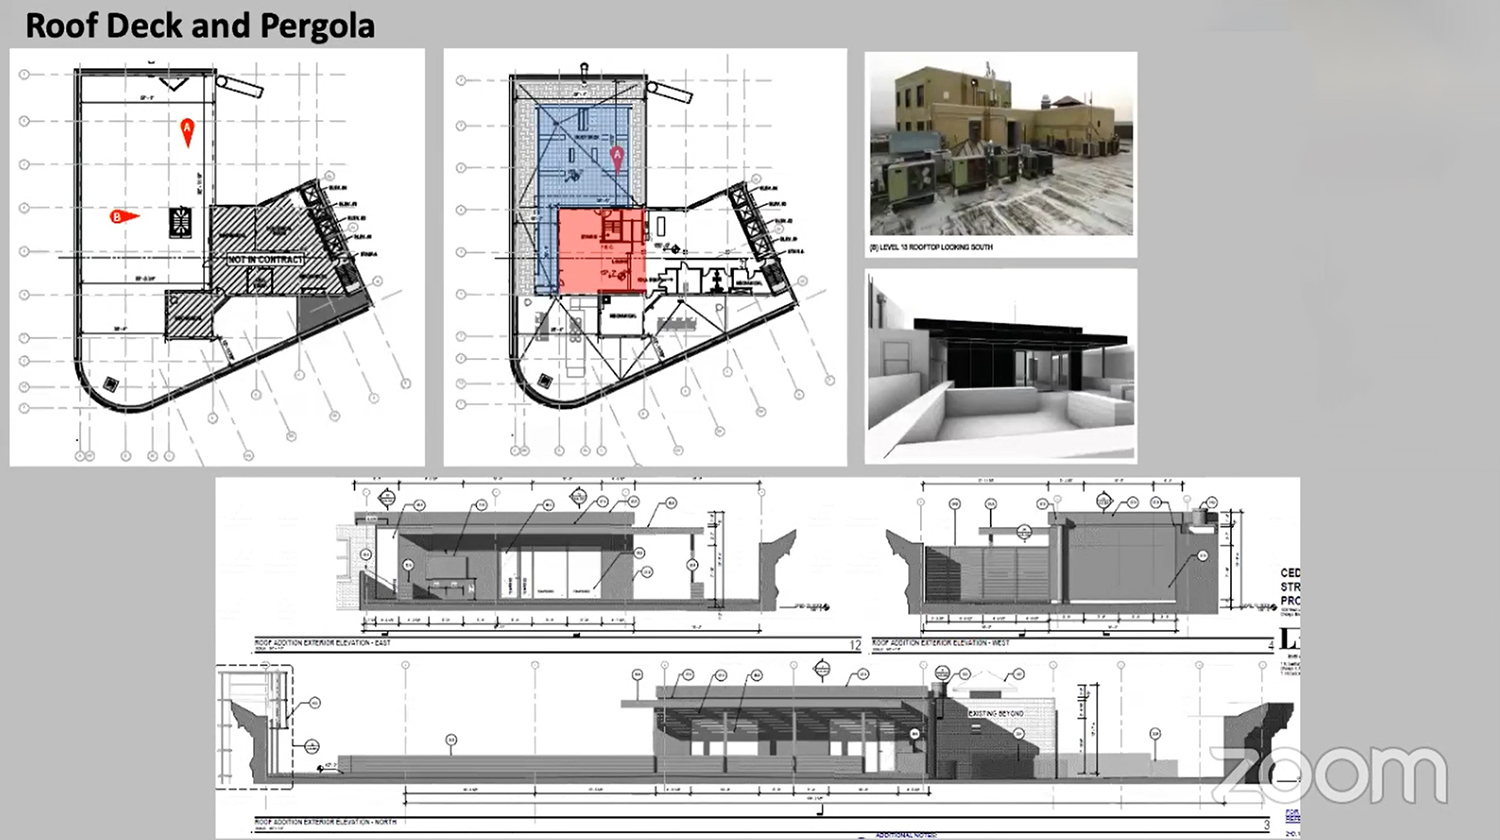 Rooftop Deck and Pergola at 4753 N Broadway. Drawings by Level Architecture